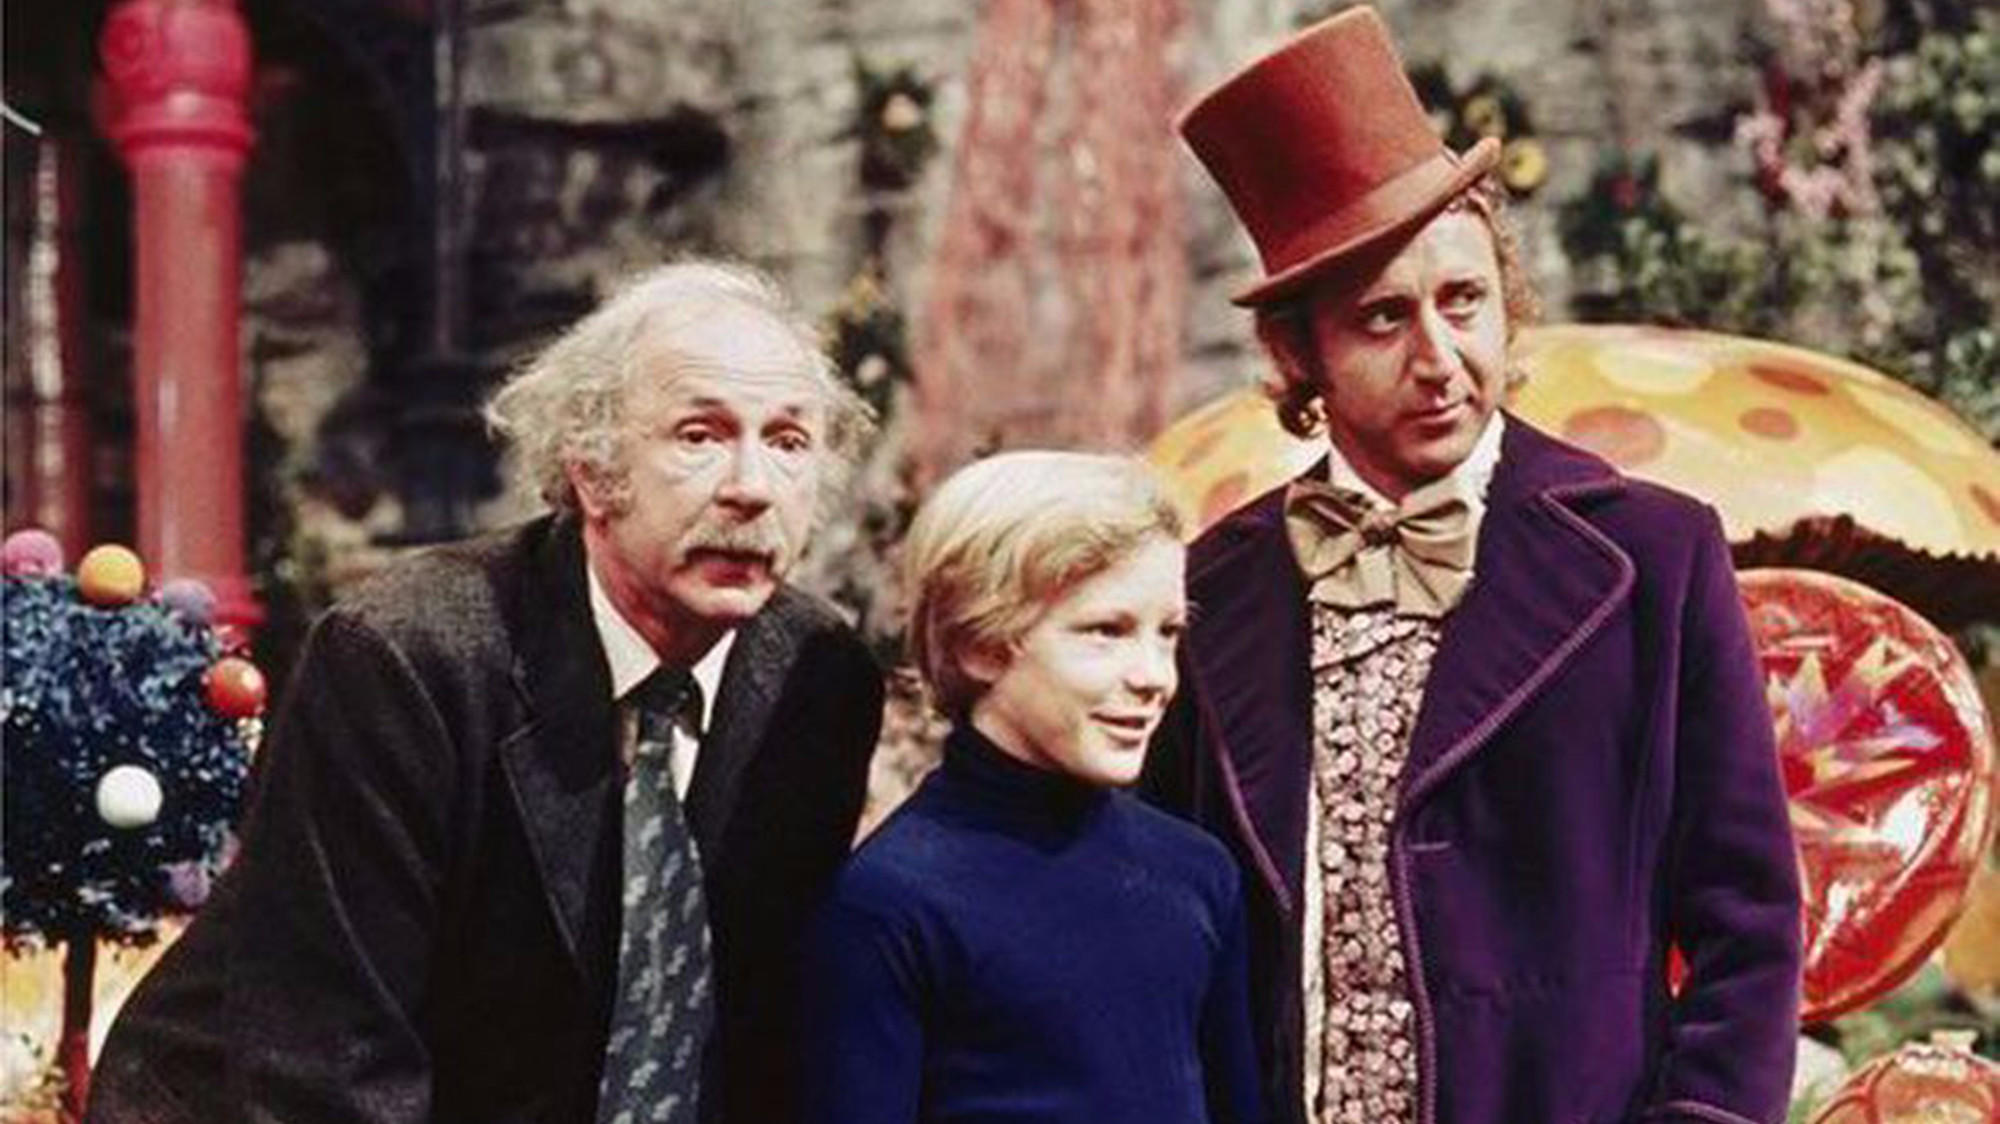 (l to r) Grampa Joe (Jack Albertson), Charlie (Peter Ostrum) and Willy Wonka (Gene Wilder) in Willy Wonka and the Chocolate Factory (1971)